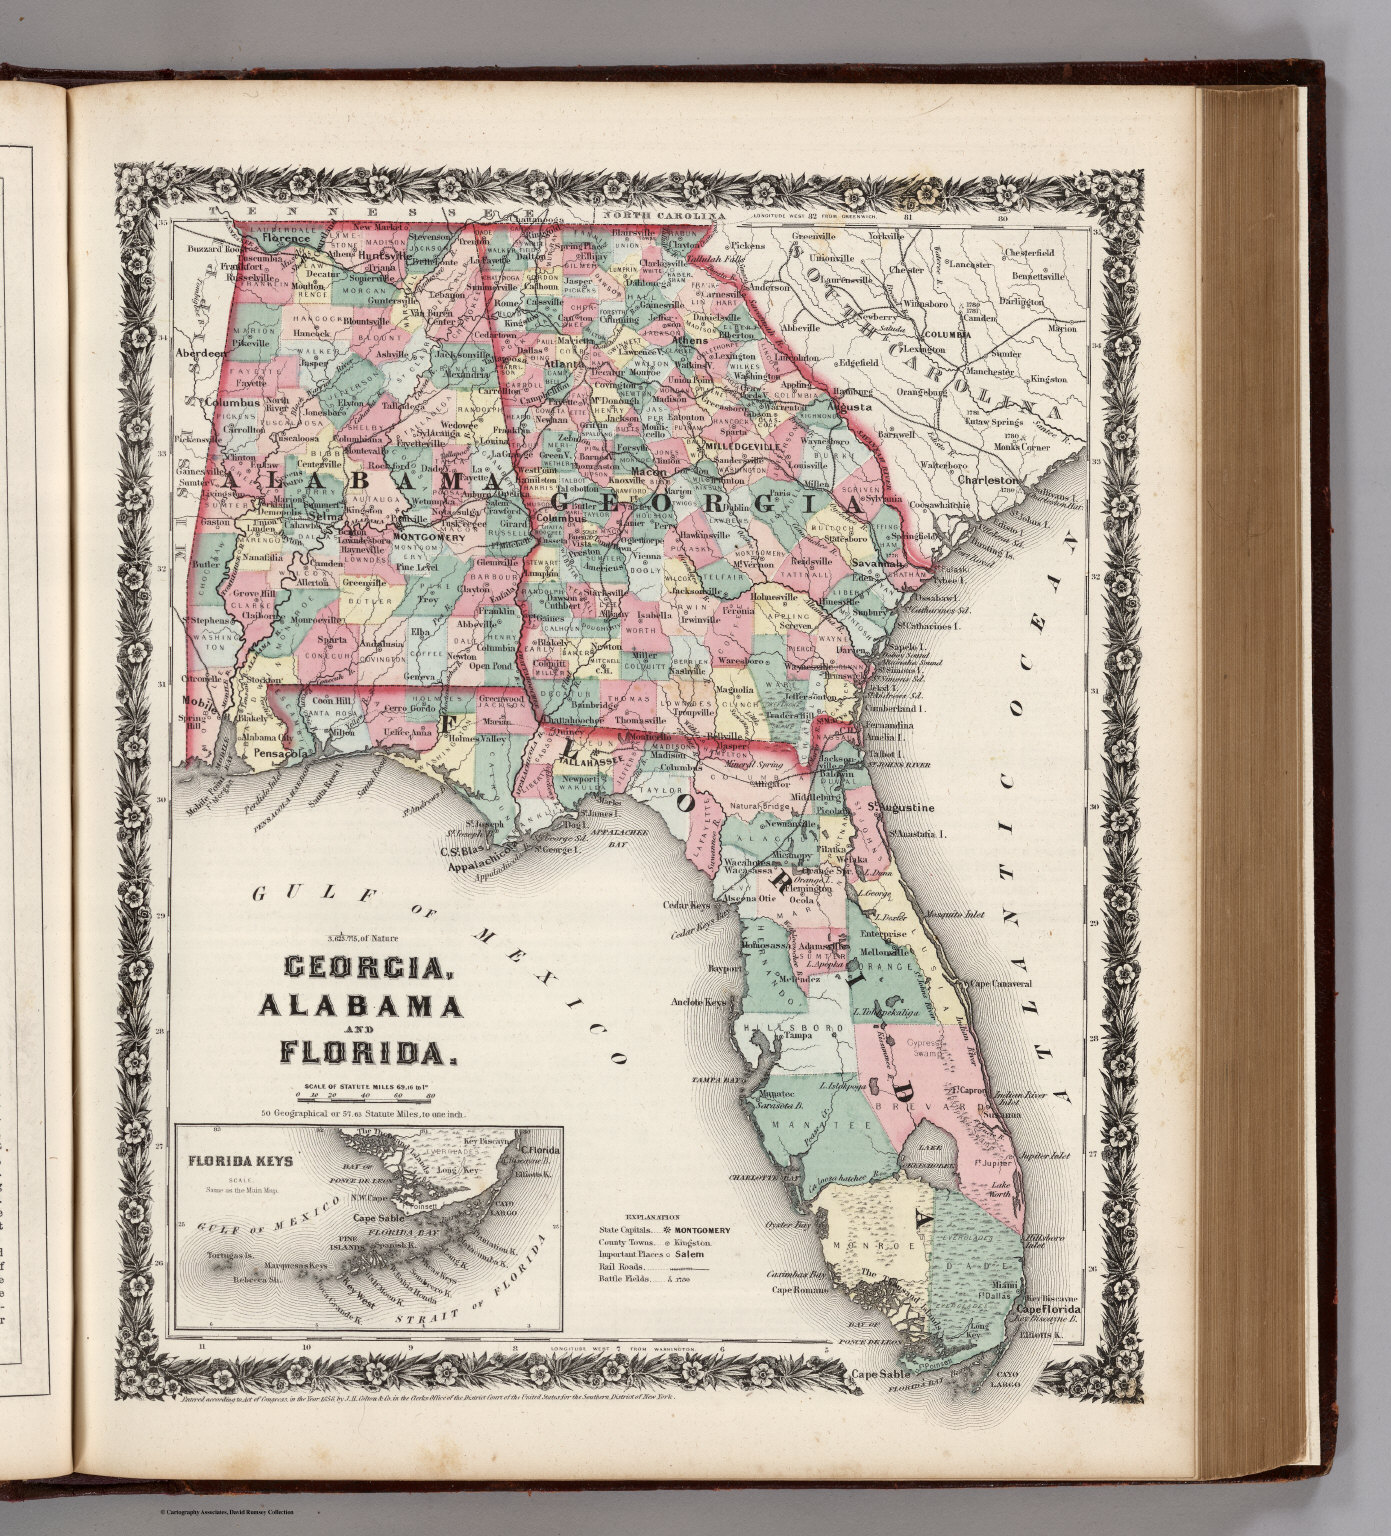 Georgia Alabama And Florida David Rumsey Historical Map - Map of alabama and florida